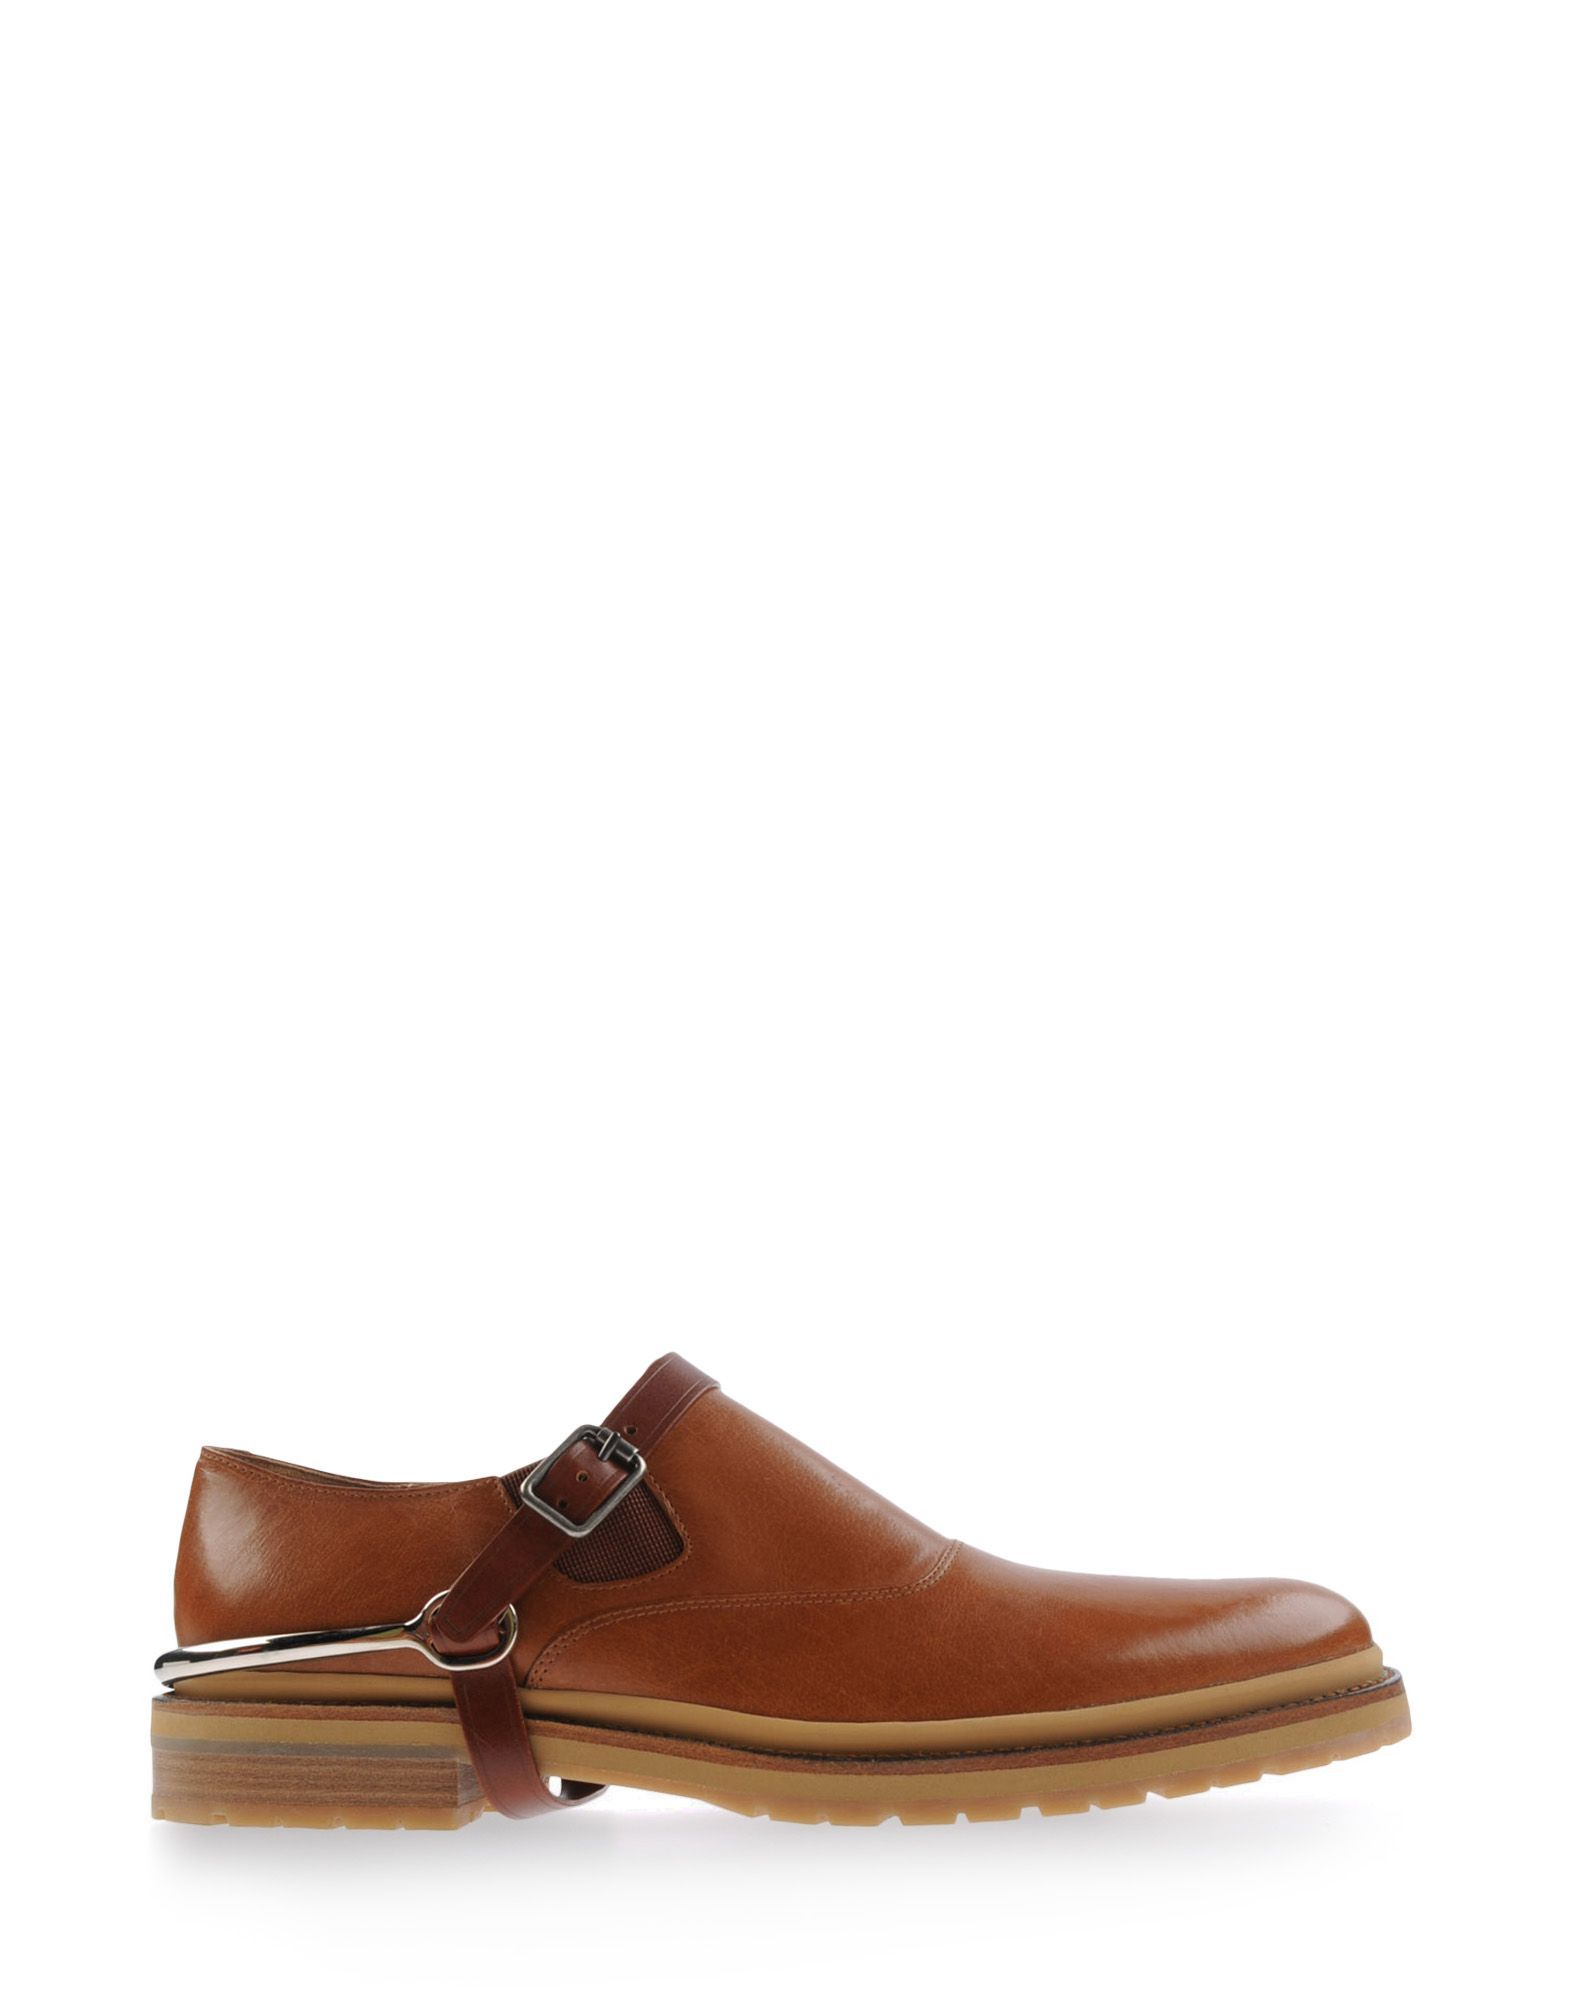 Dries Van Noten Pony Shoe Men